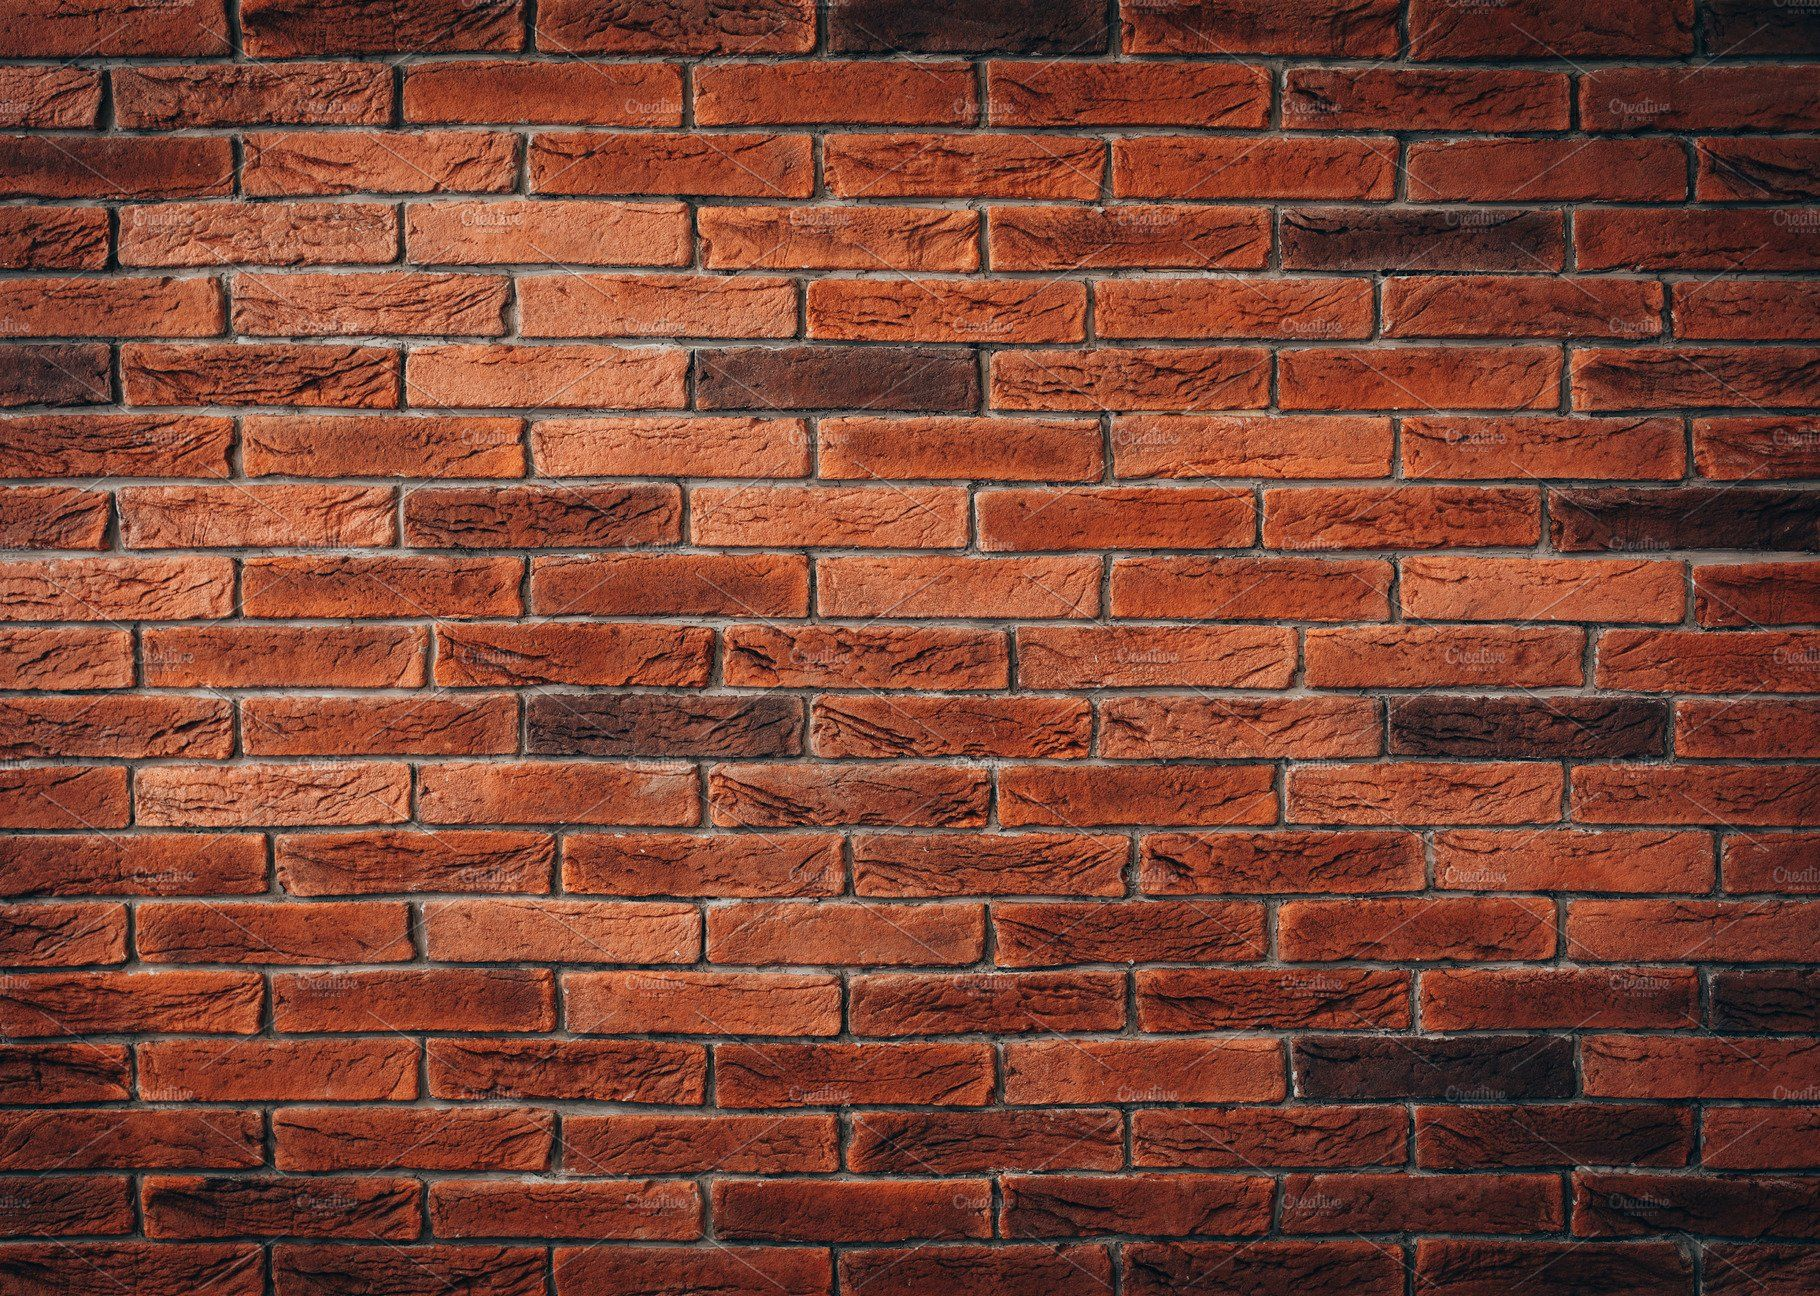 Red brick wall texture by primopiano on @creativemarket